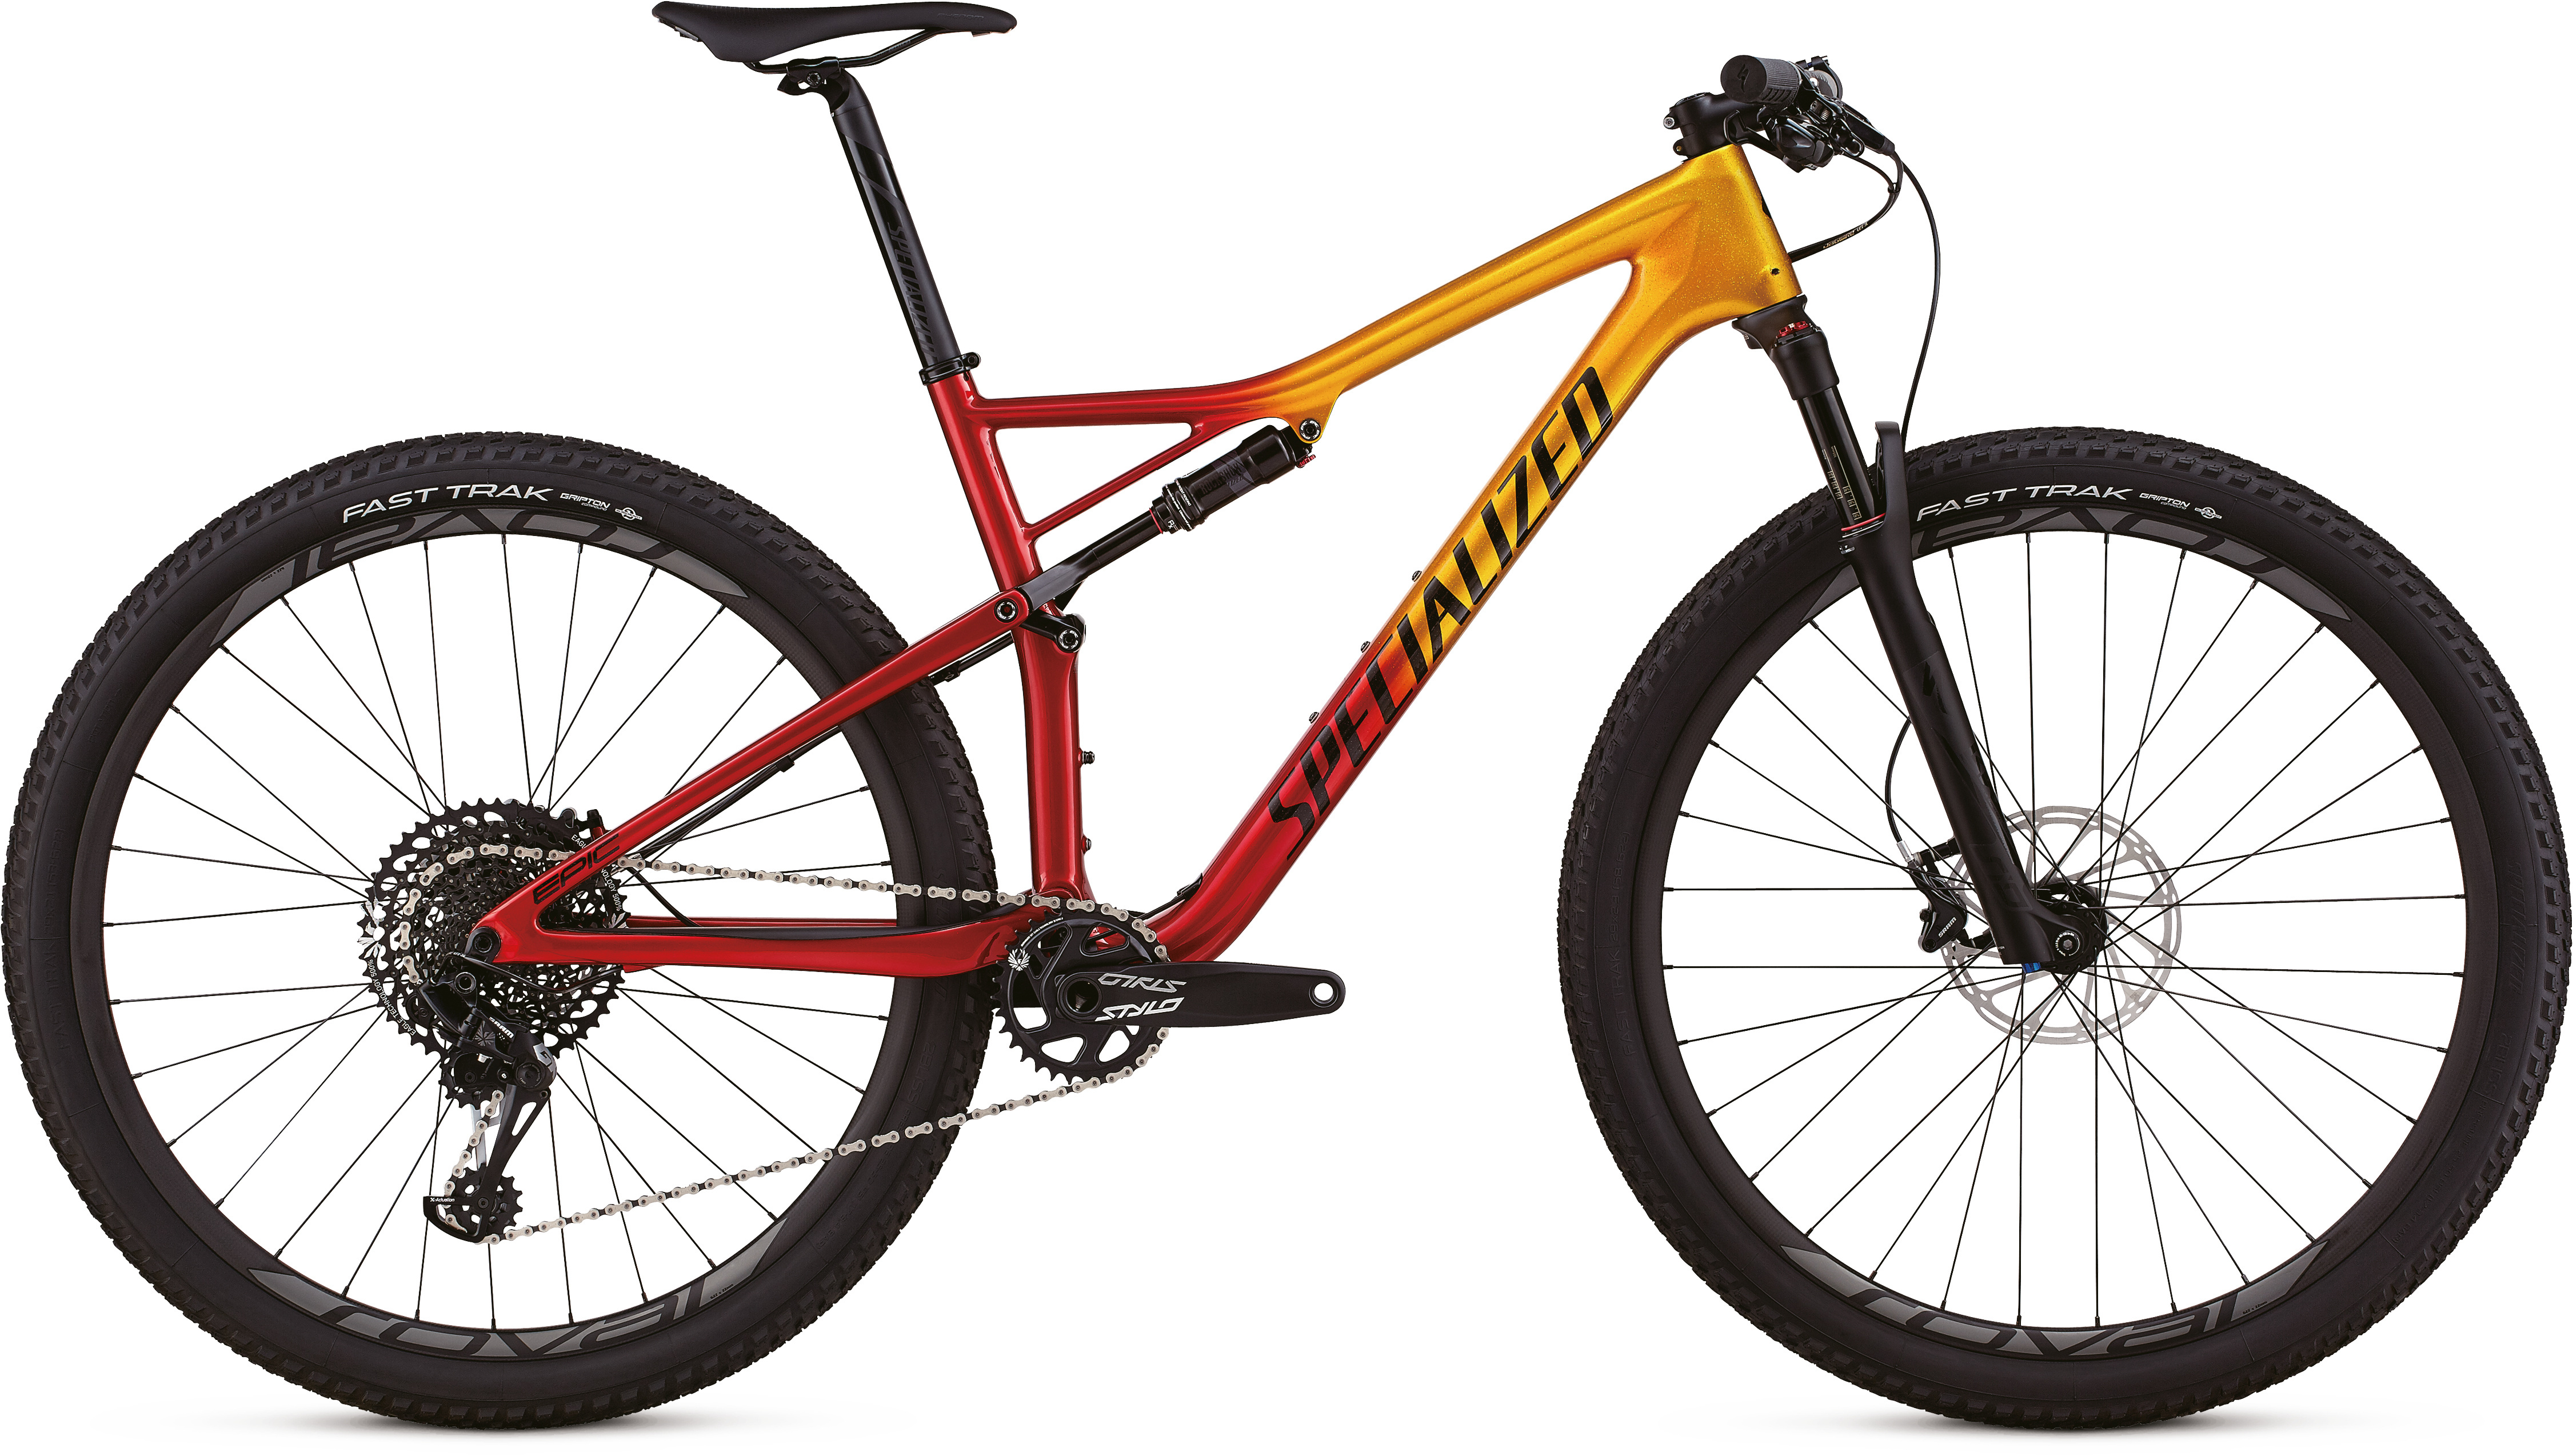 Specialized - Epic Expert | mountainbike